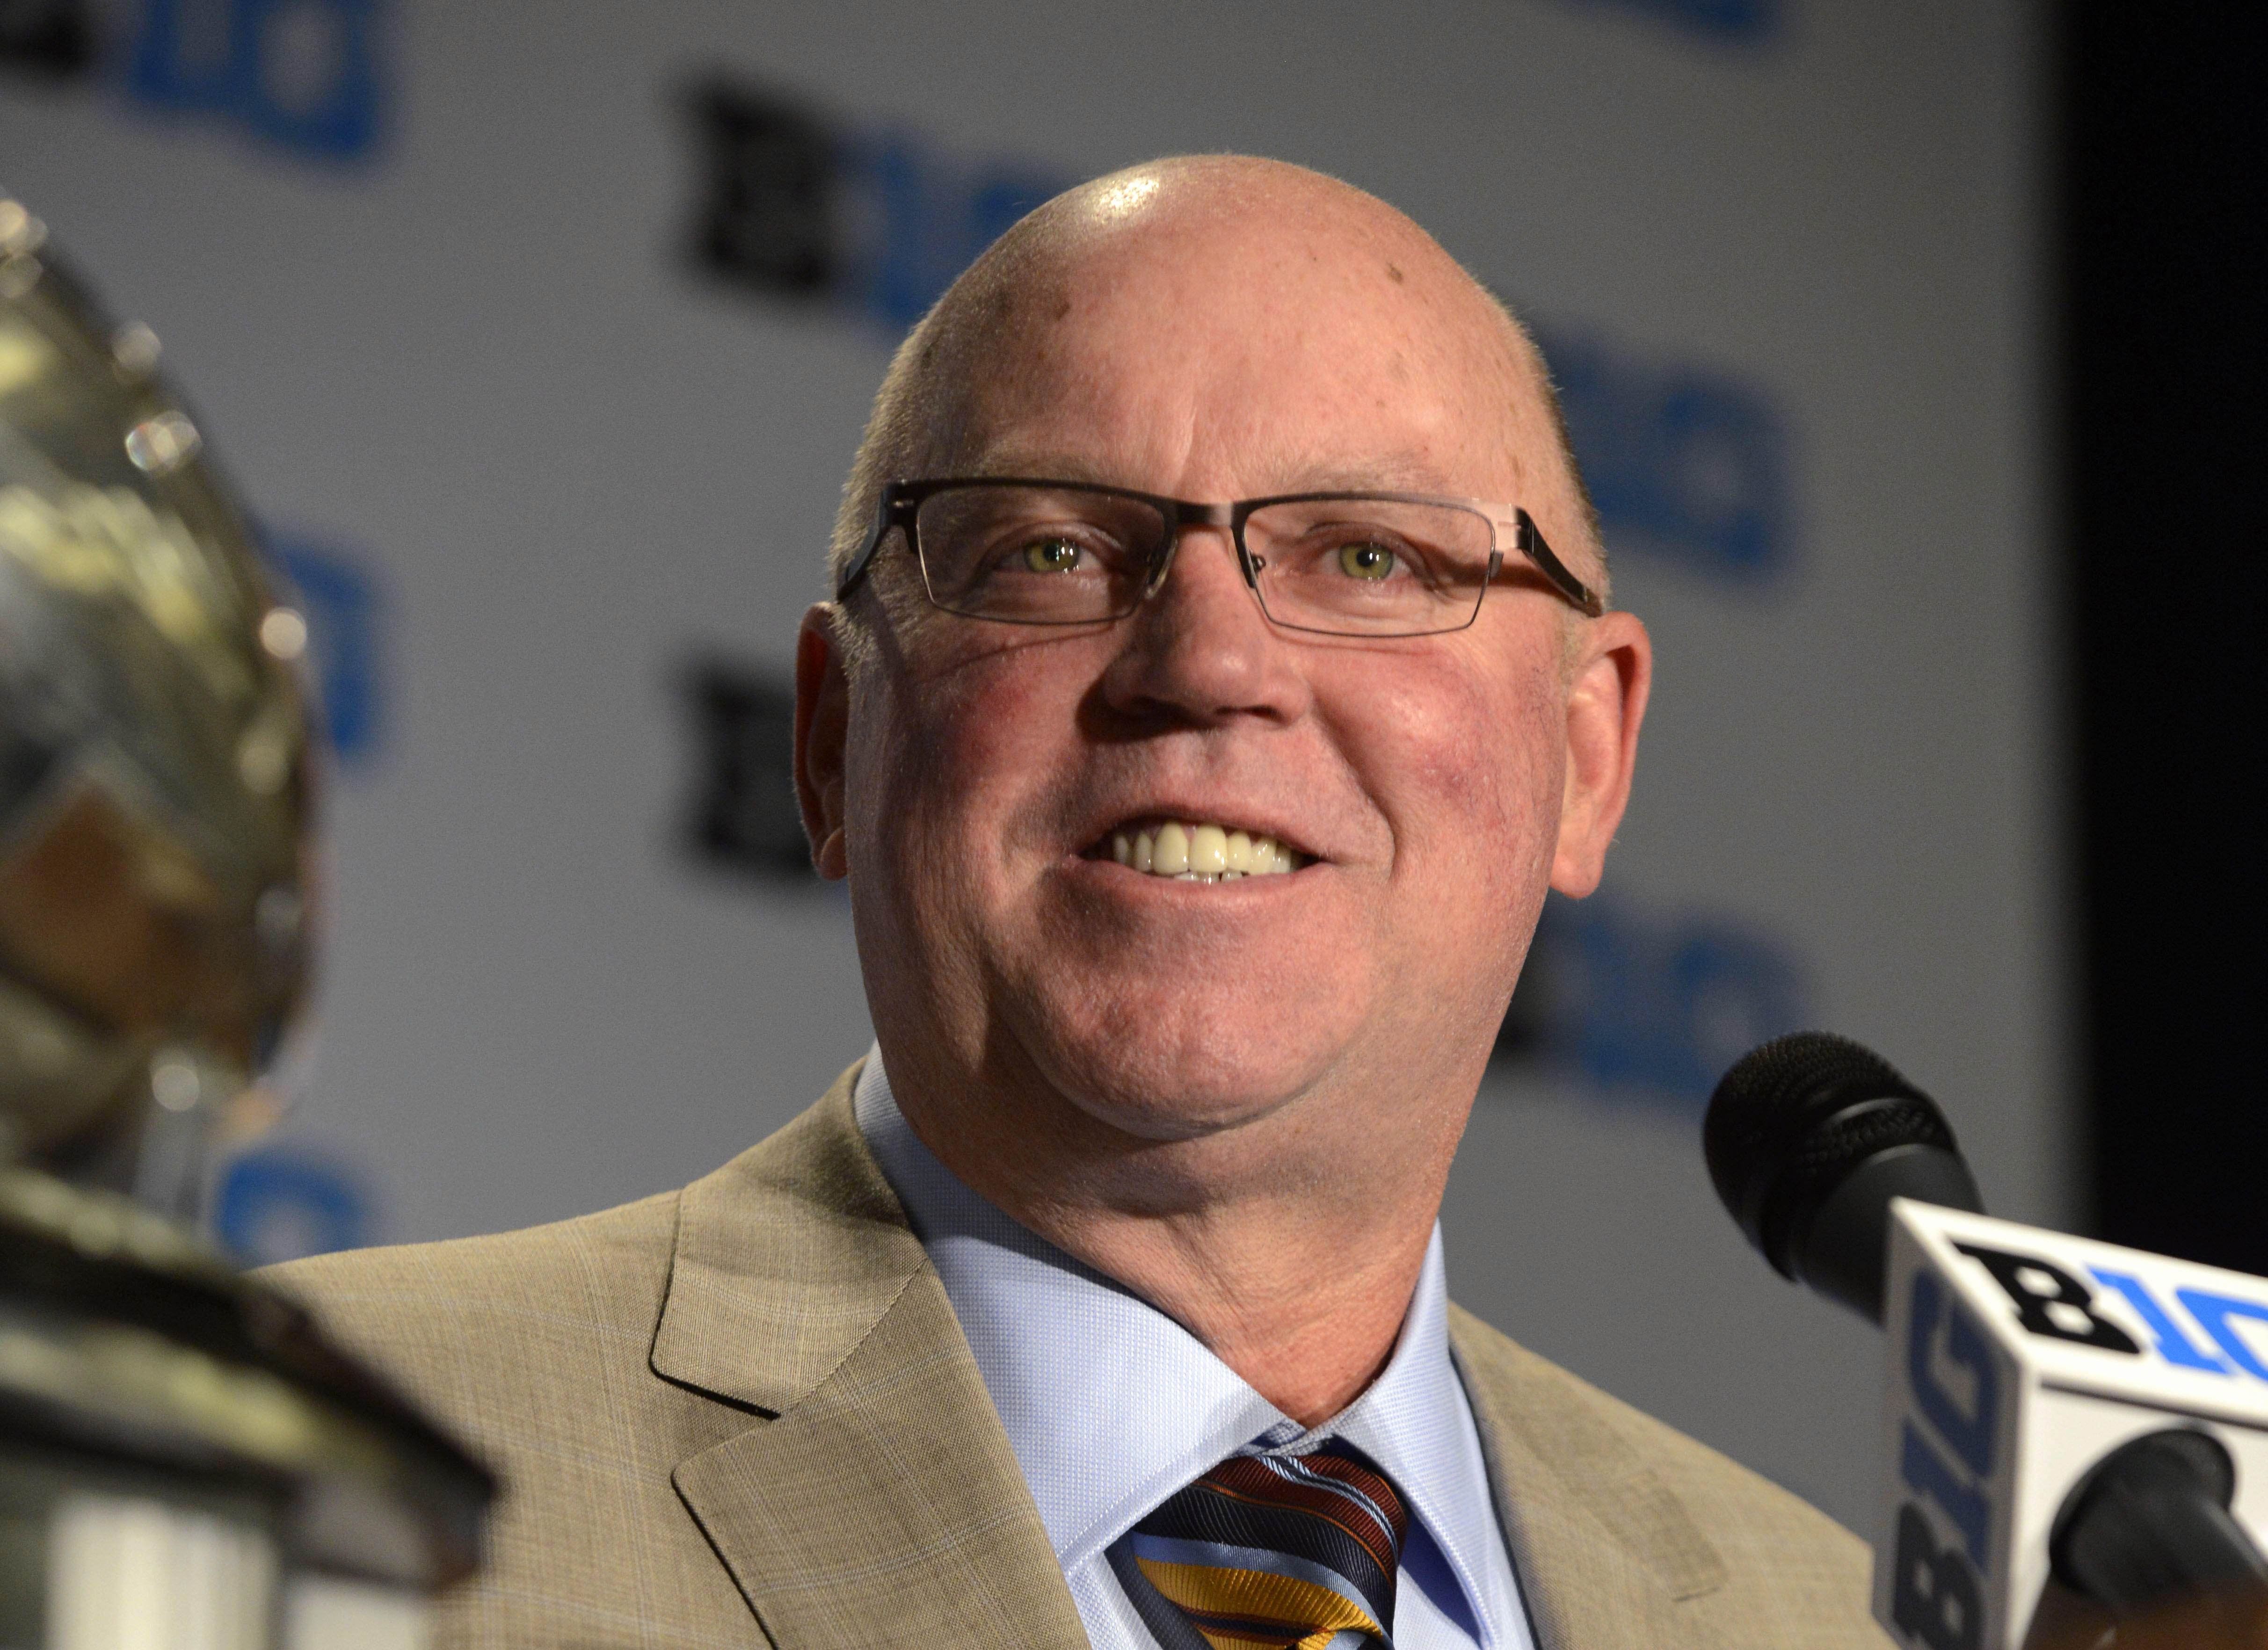 FILE - In this July 31, 2015, file photo, Minnesota head coach Jerry Kill speaks to the media during the NCAA college Big Ten Football Media Day in Chicago. Kansas State has hired former Minnesota football coach Jerry Kill as an associate athletic directo